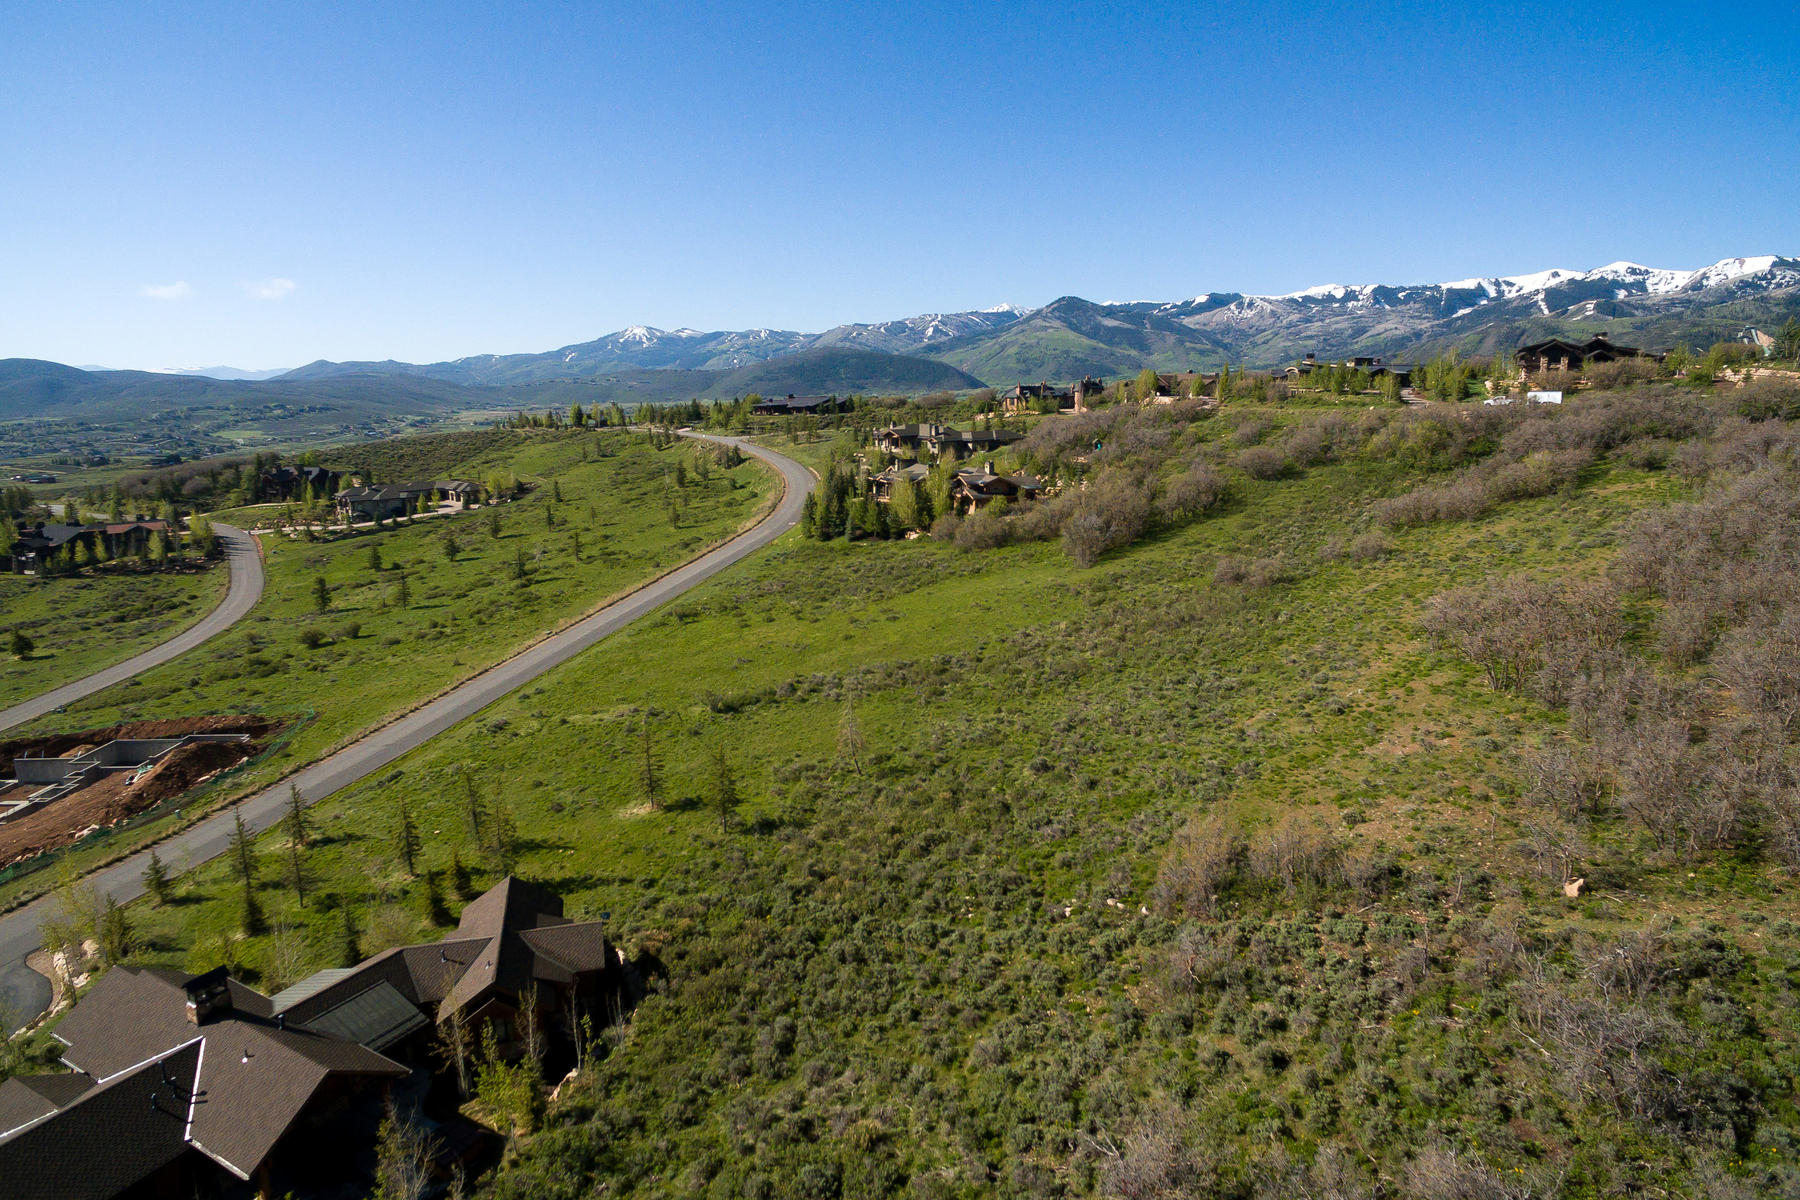 Land for Sale at Spacious 2+ Acre Glenwild Lot with a Gradual Slope, Golf Course & Mountain Views 7217 Glenwild Dr Park City, Utah 84098 United States